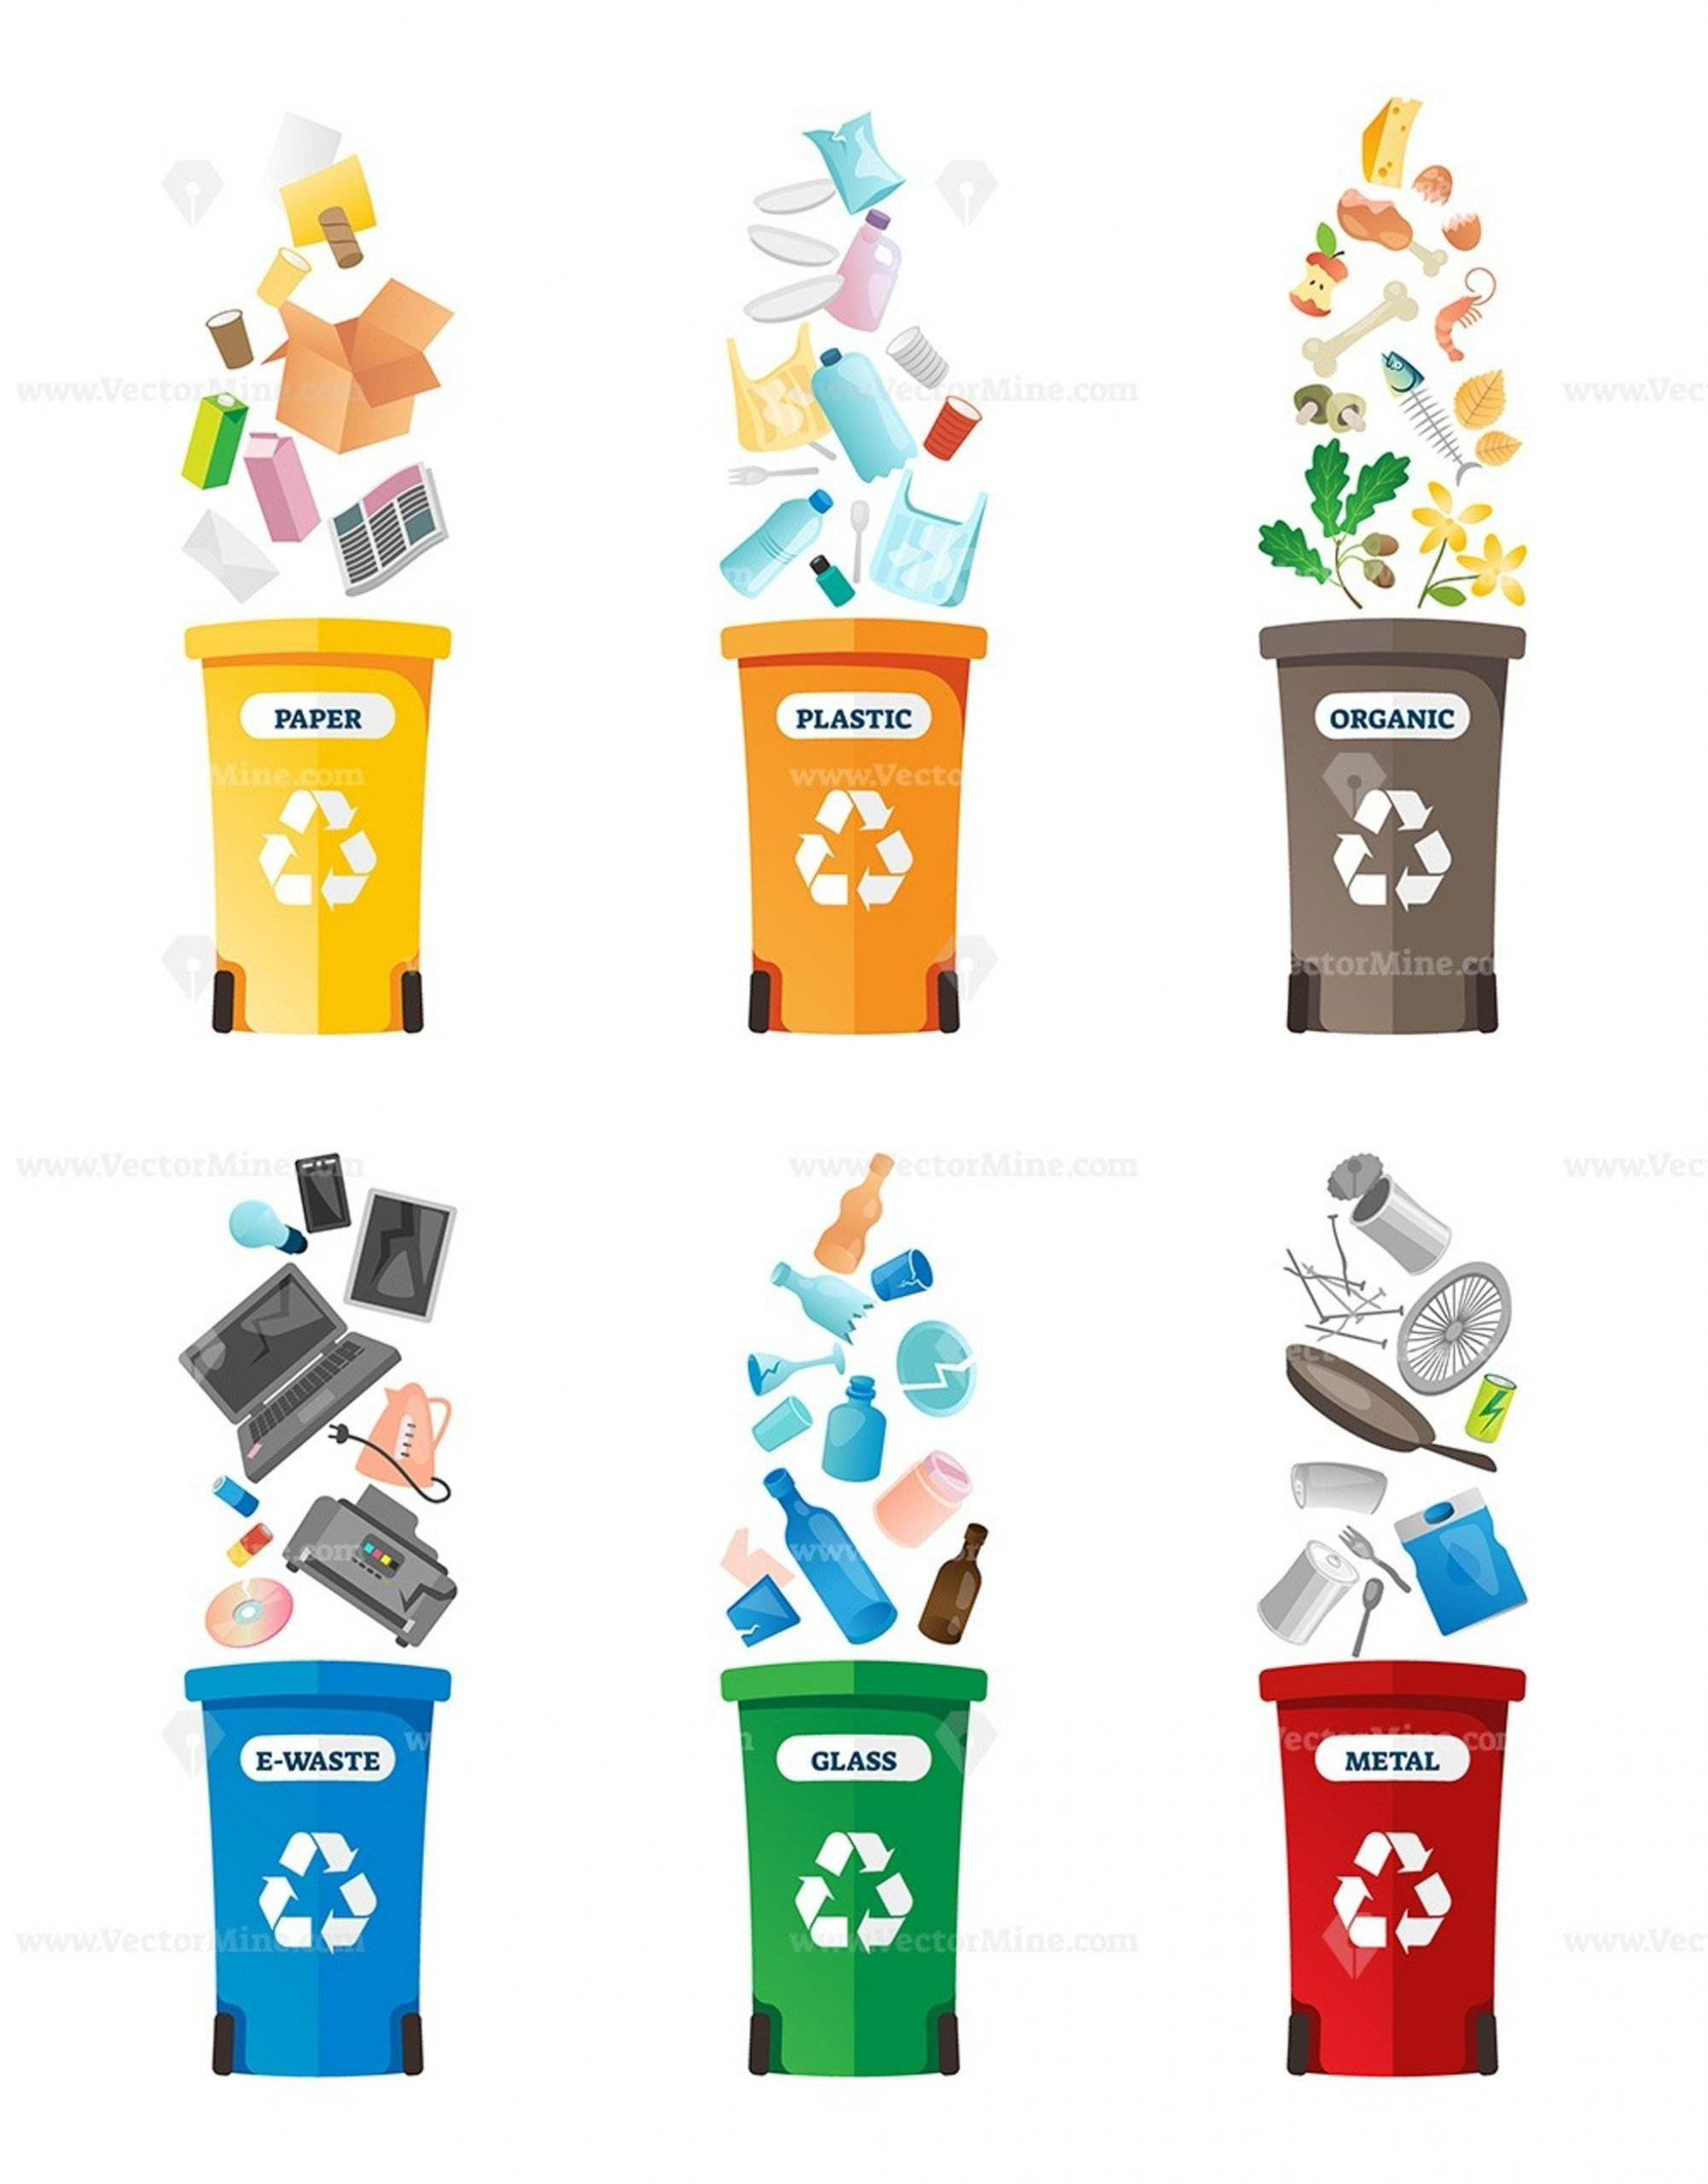 Free Recycling Worksheets Free Recycling Vector Illustration Collection